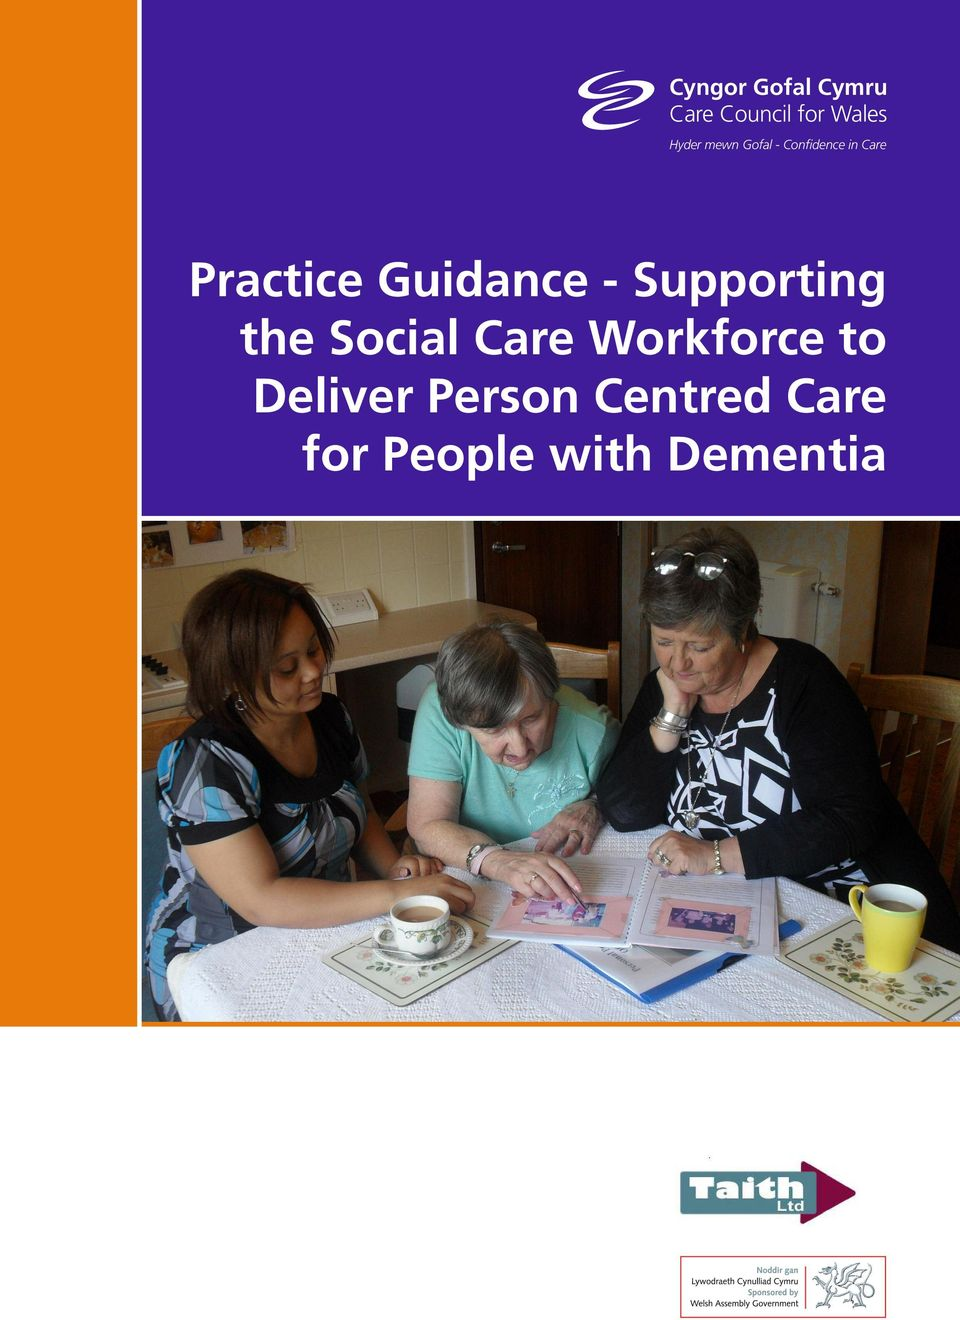 Guidance - Supporting the Social Care Workforce